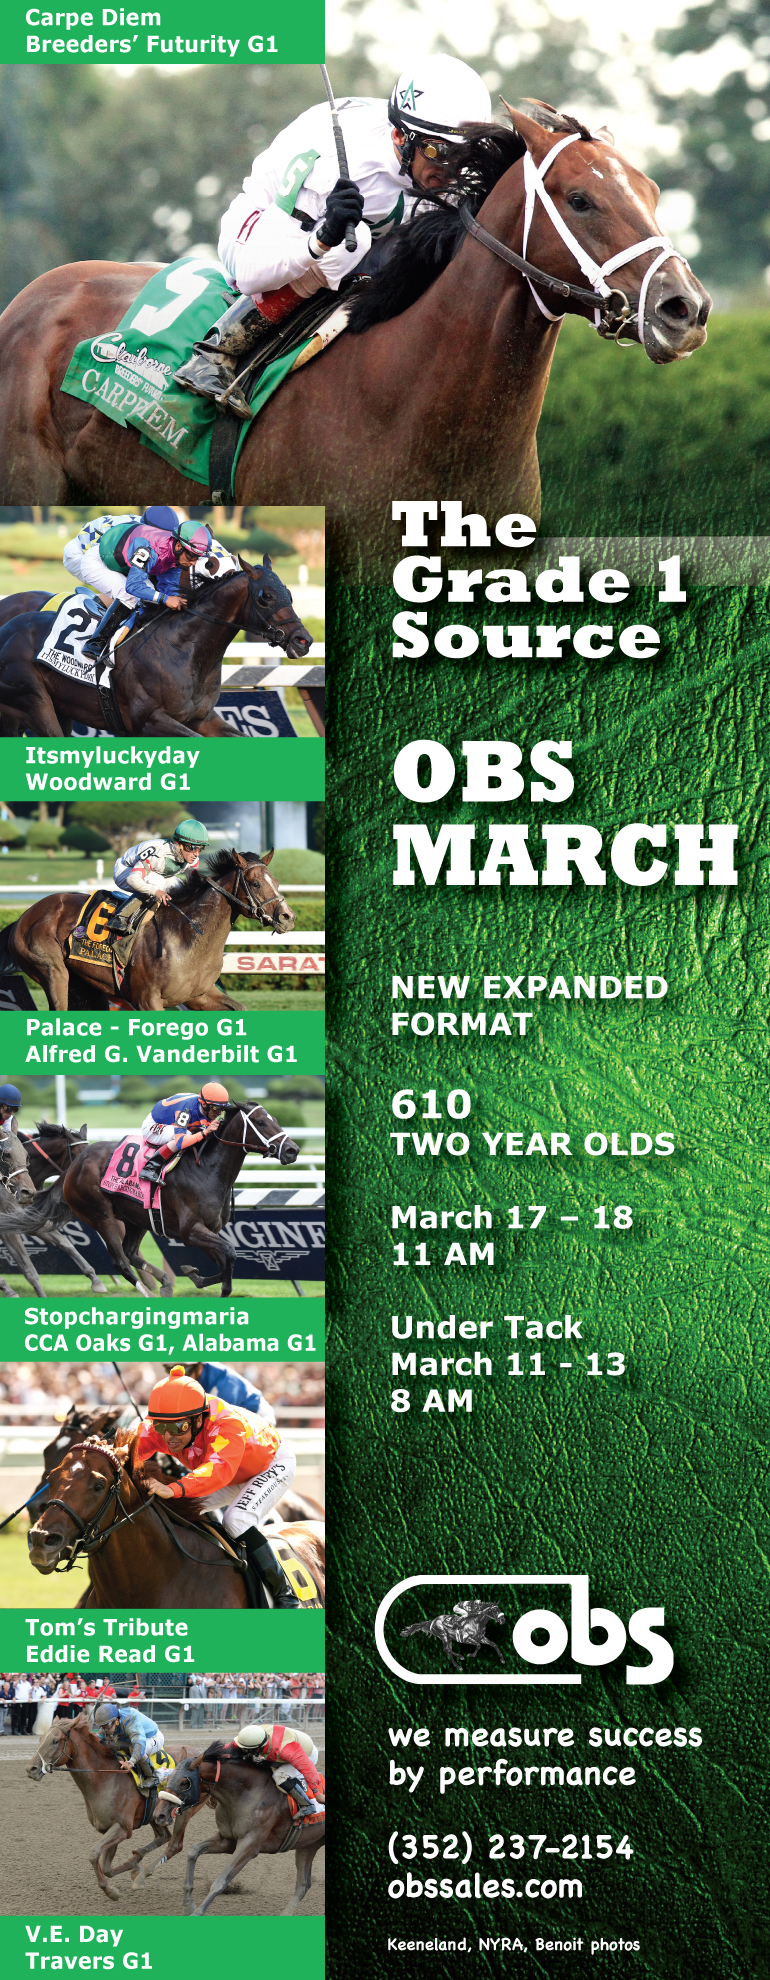 obs march 2015 TDN half photos Six G1 winners